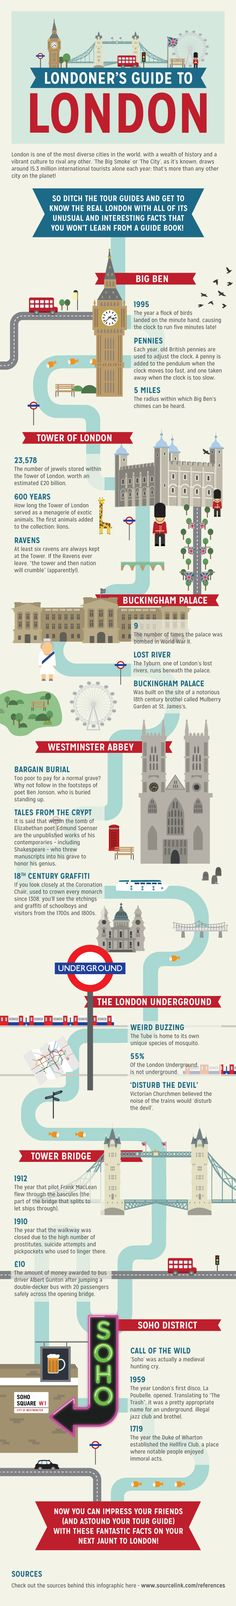 London Confidential : Curious about the past? Here are some untold stories and facts about London's history and popular attractions that you will love to know and show off your friends. > http://infographicsmania.com/london-confidential/?utm_source=Pinterest&utm_medium=ZAKKAS&utm_campaign=SNAP